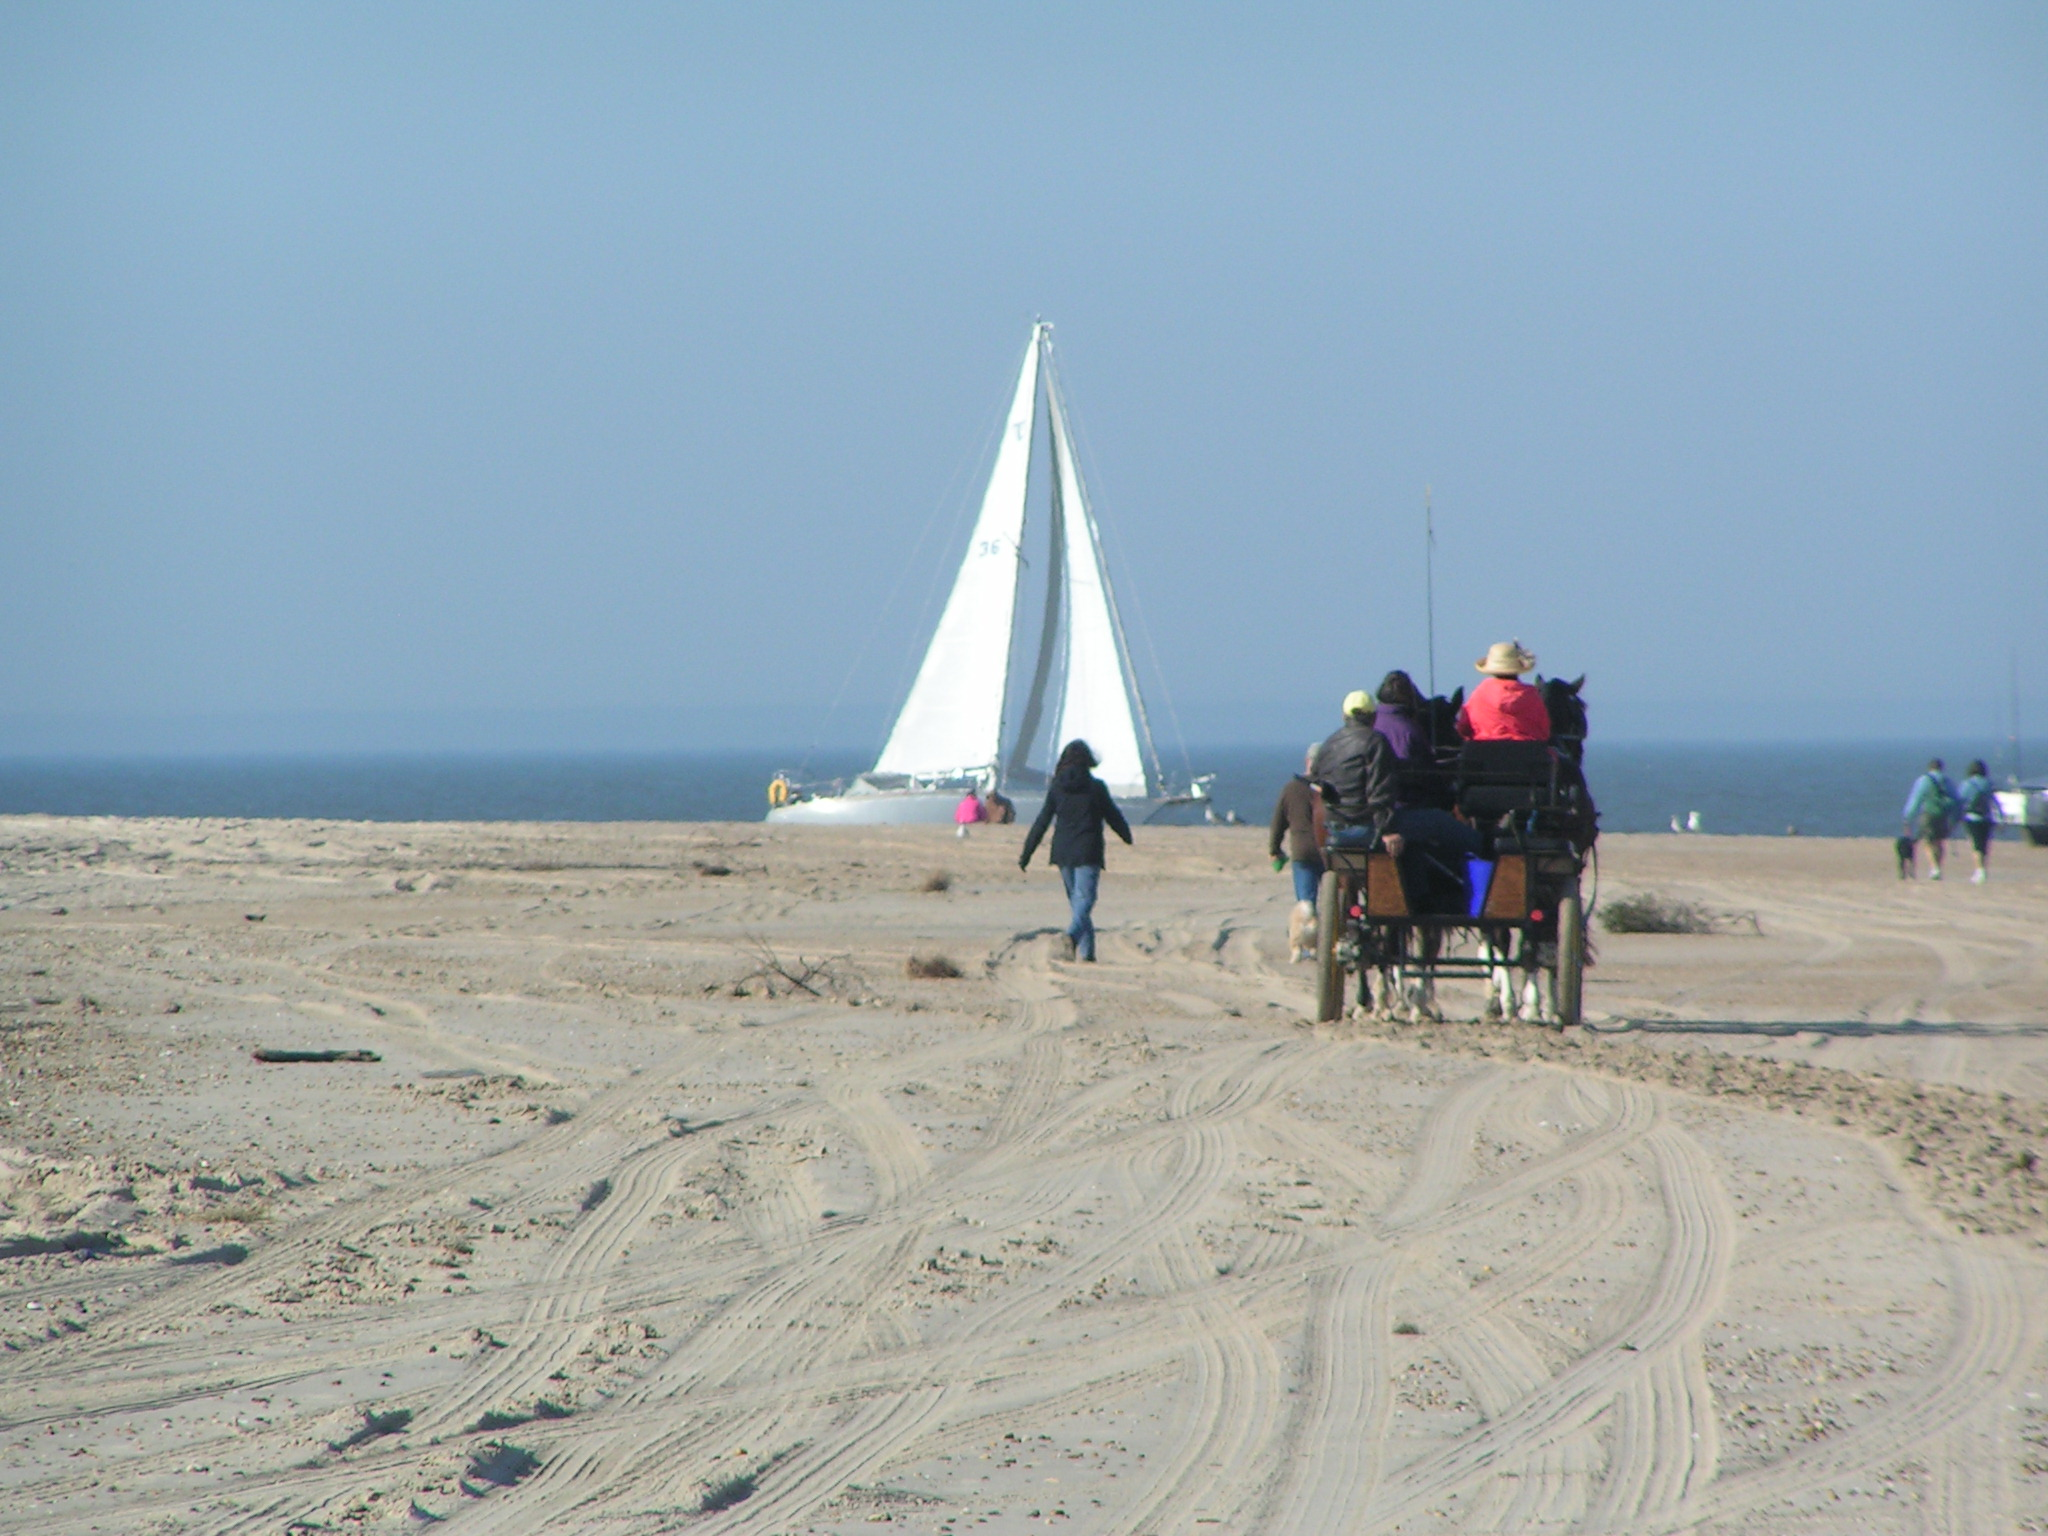 the point, cape henlopen state park, dsf, delaware surf fishing, horse and carraige on bach, sailing in delaware